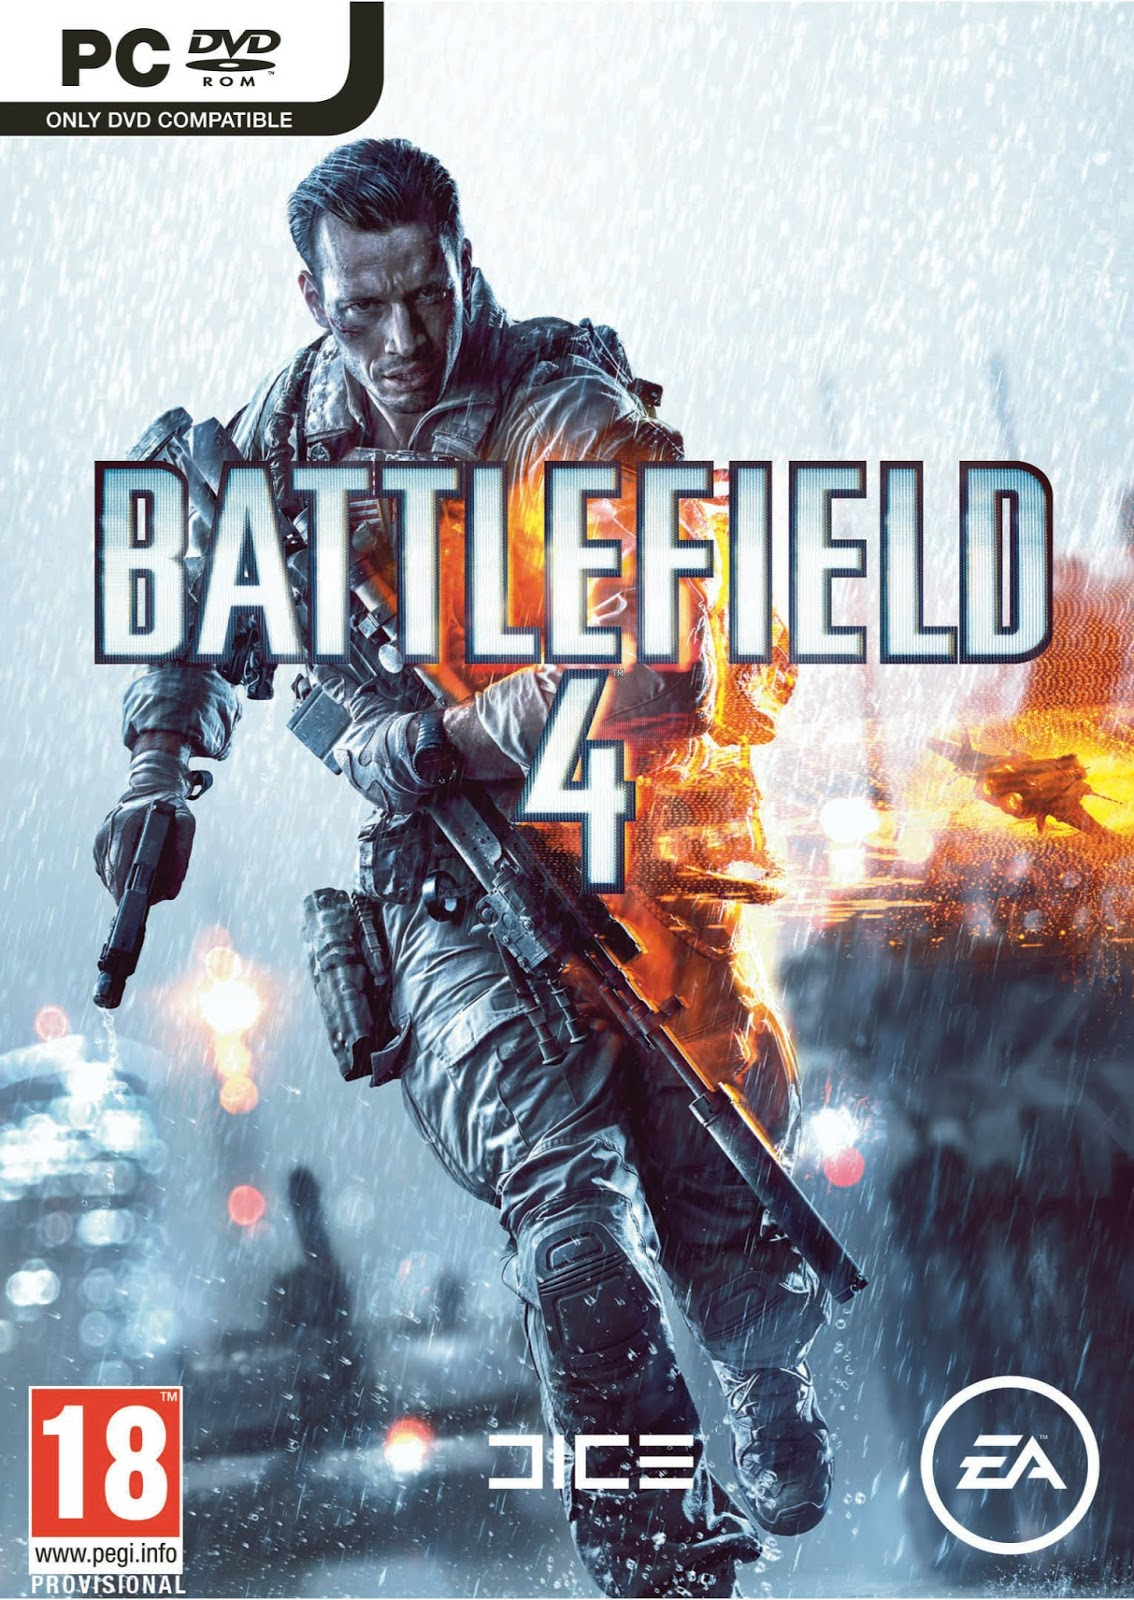 Download Battlefield 4 Full PC Game Crack (Torrent) ~ Free ...